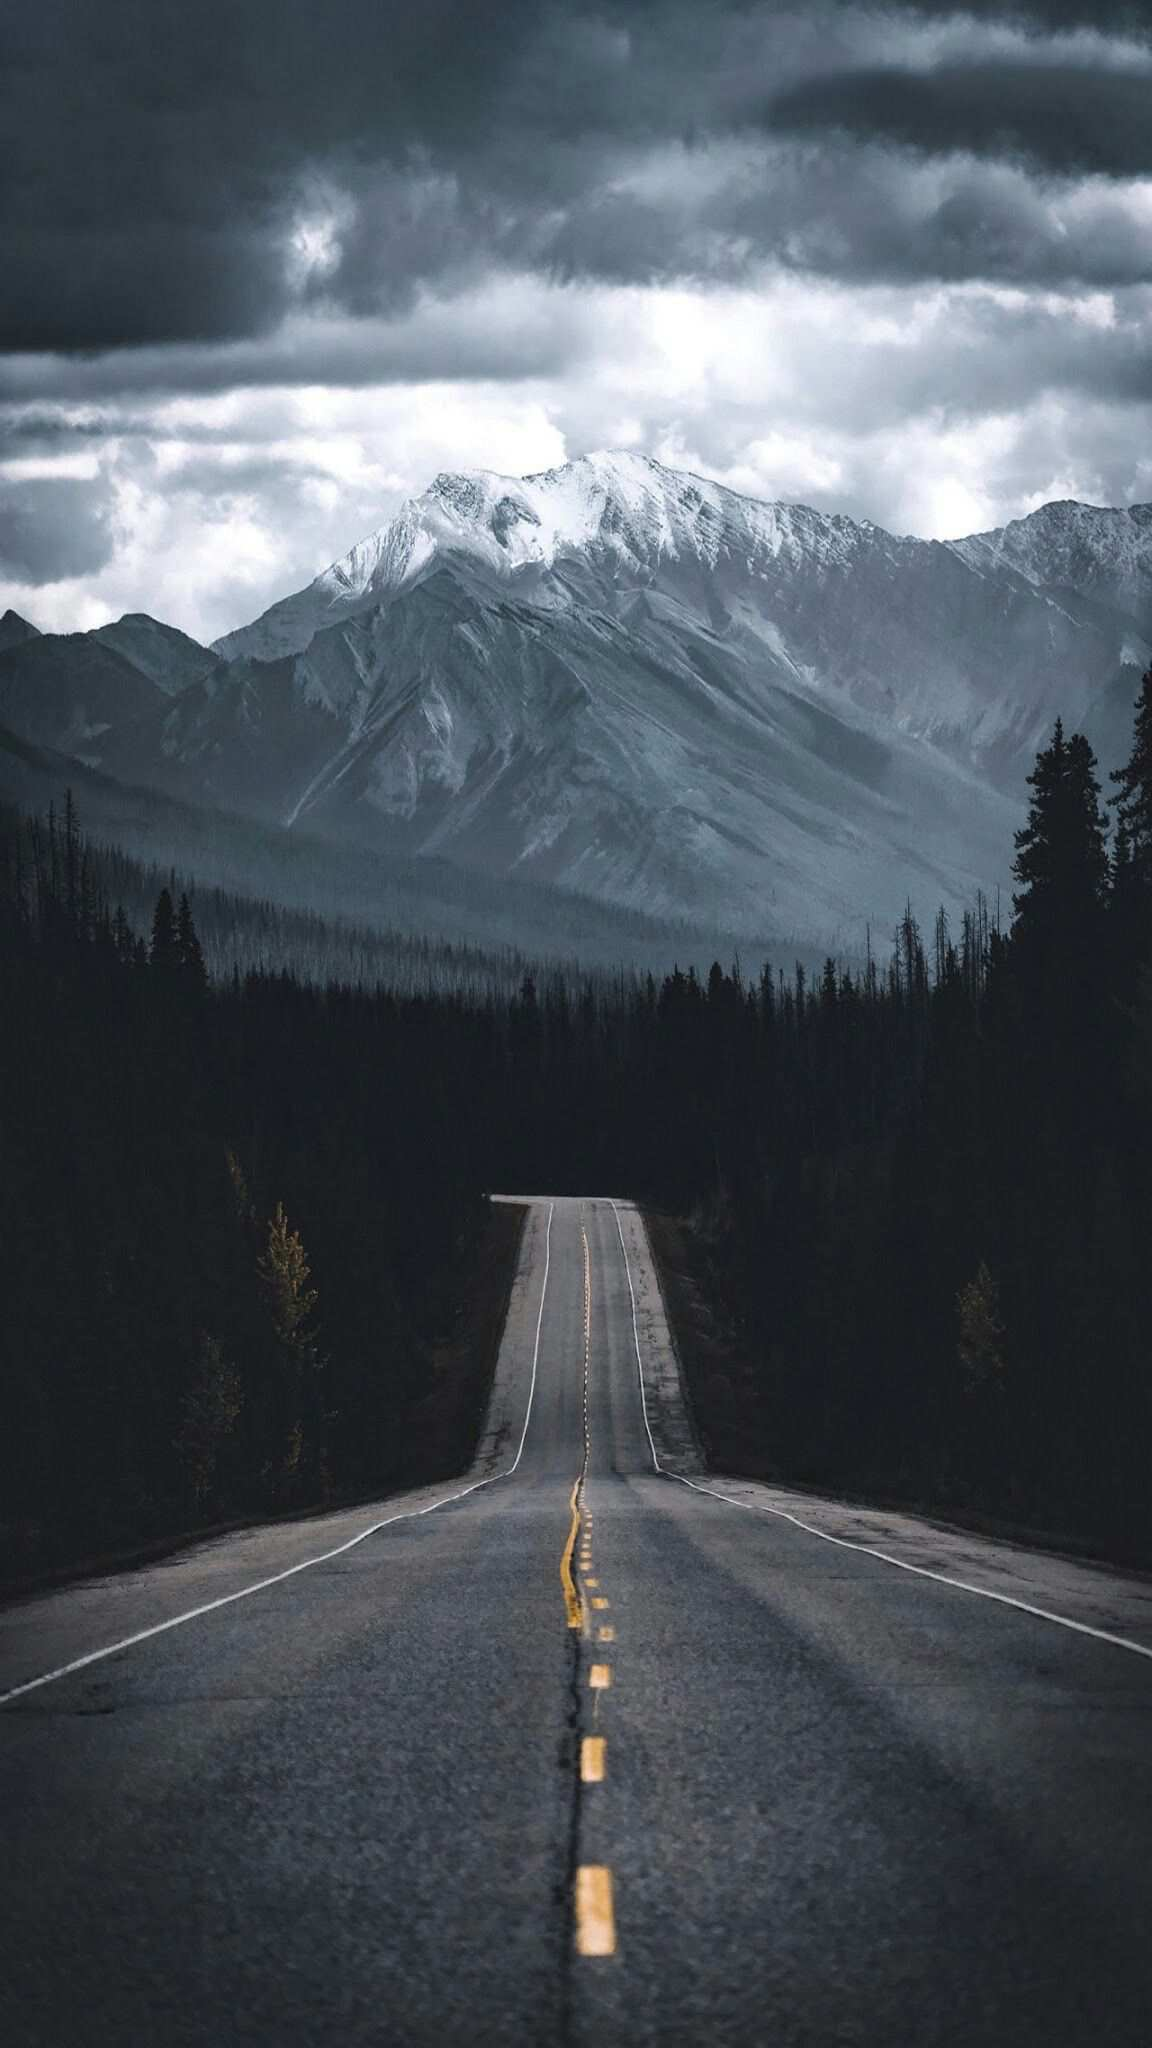 Road to Mountain Nature iPhone Wallpaper